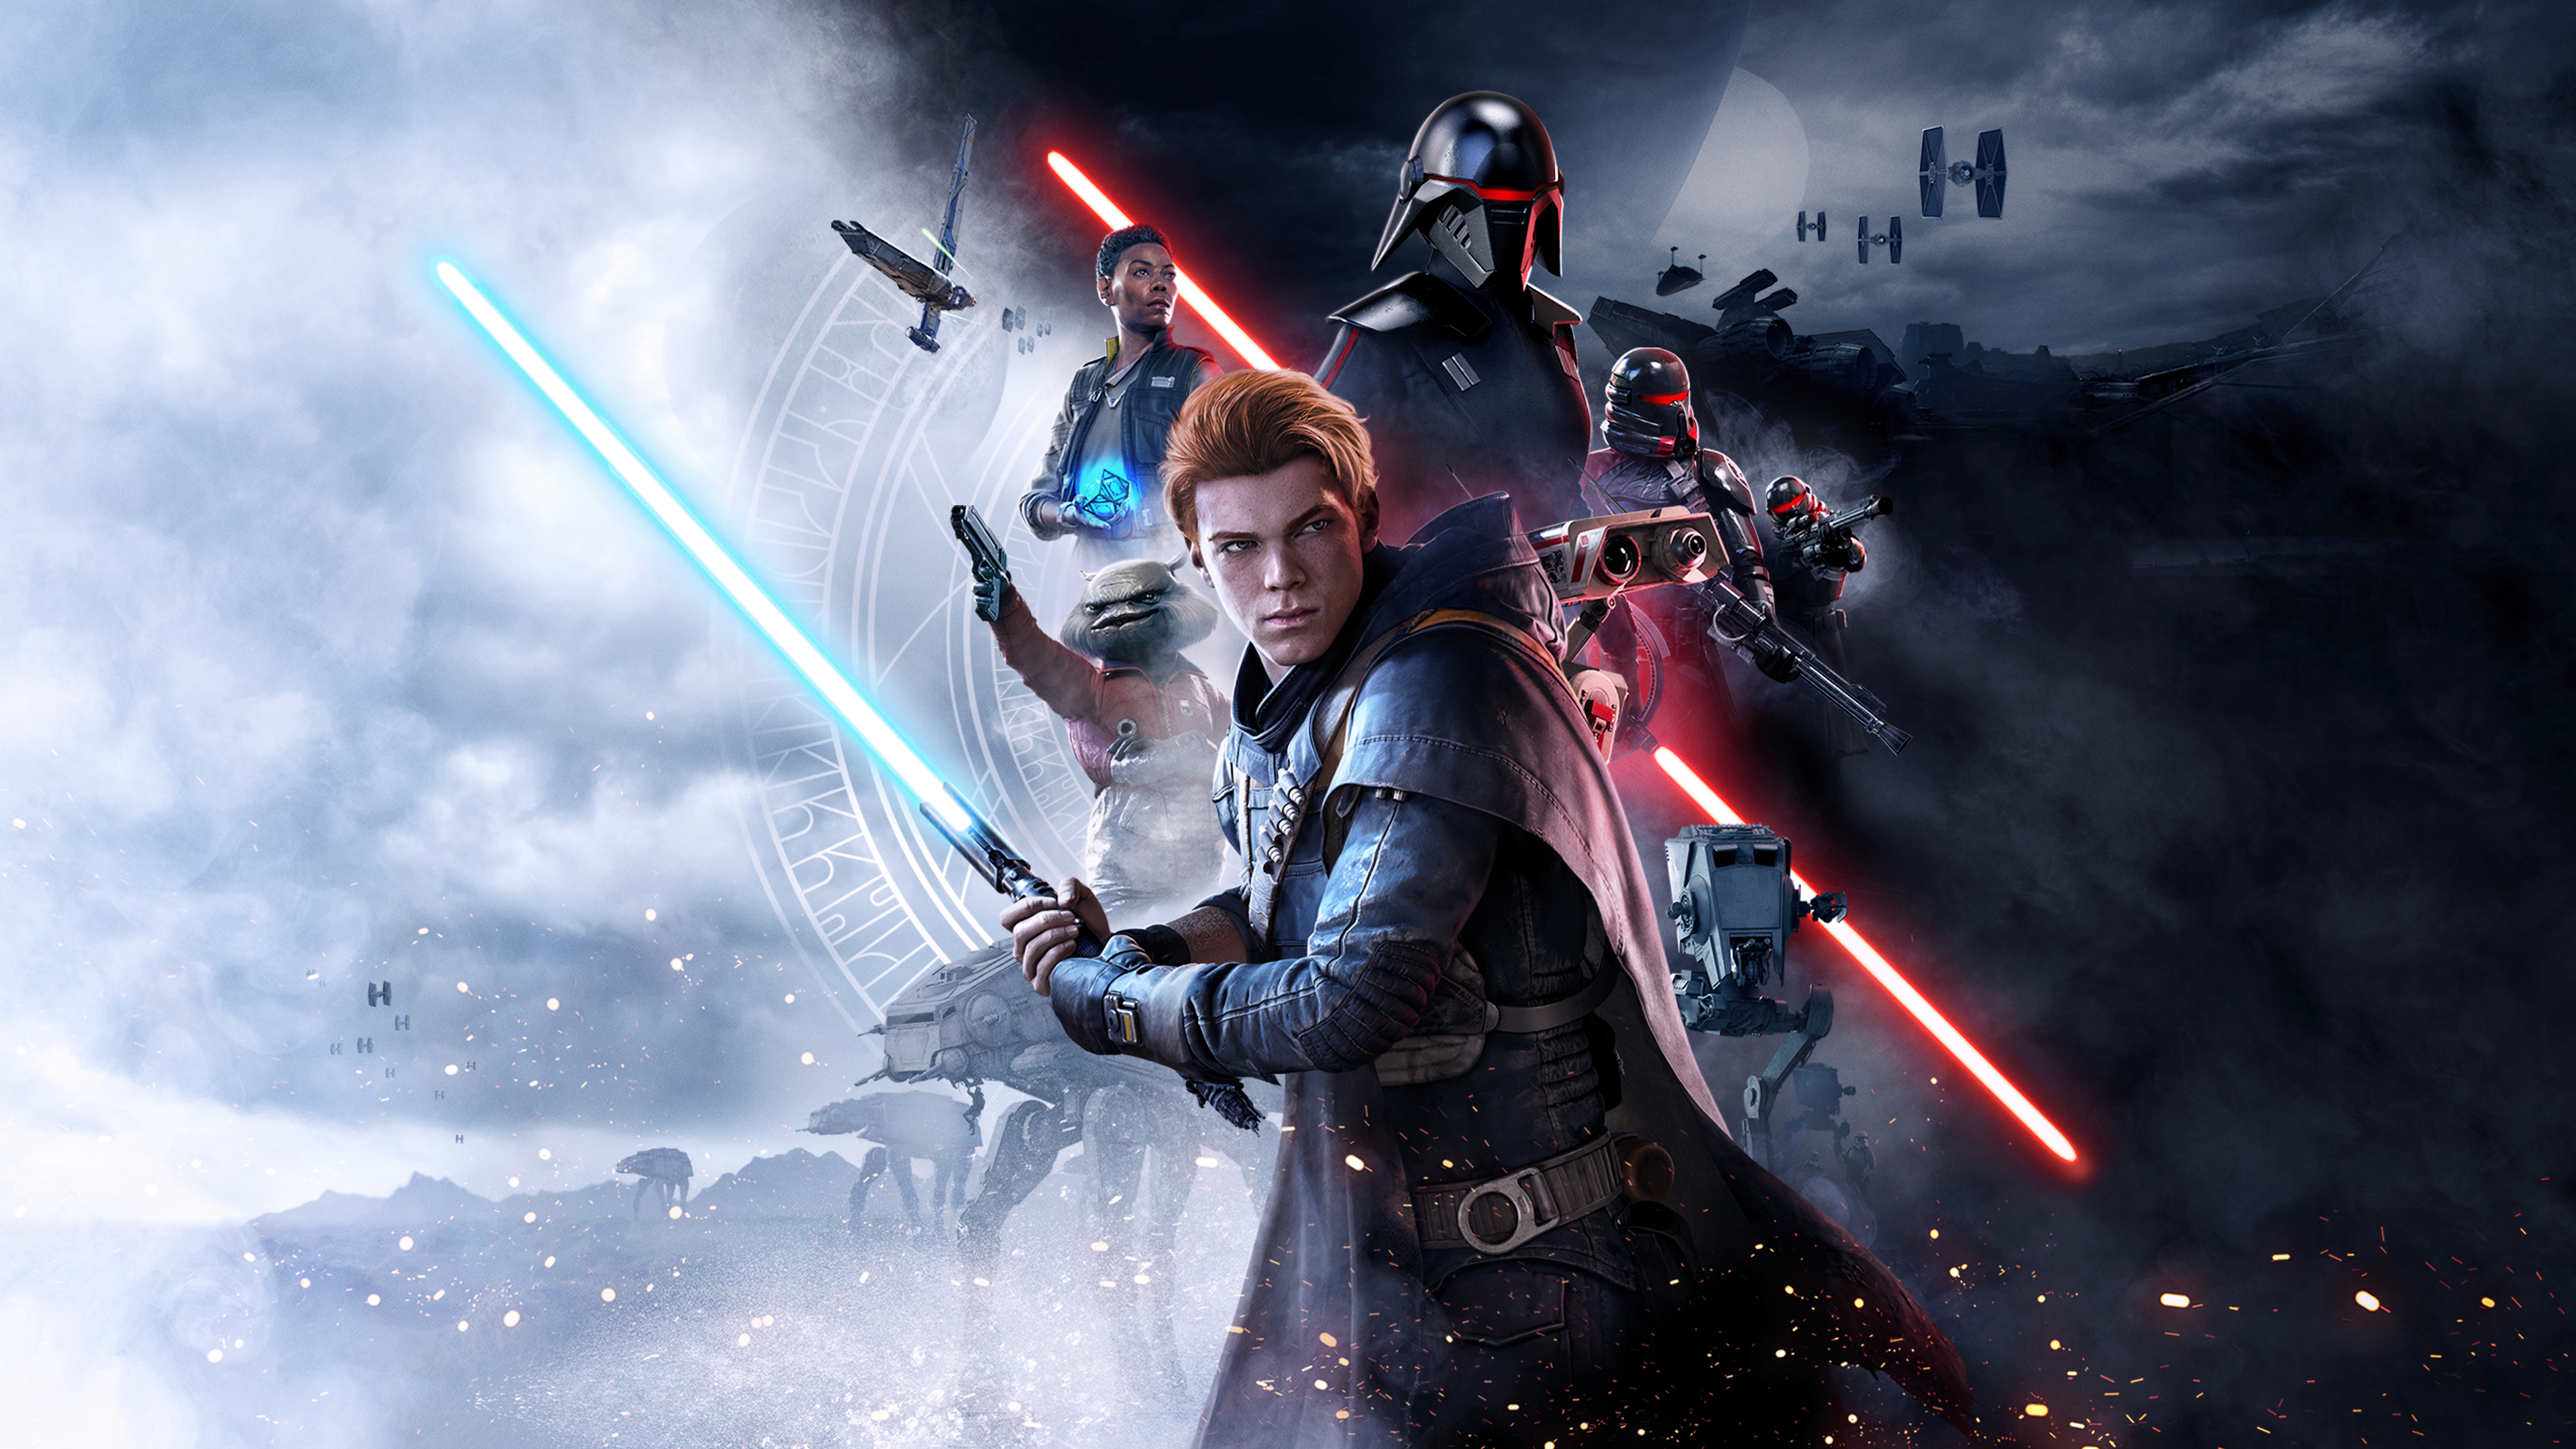 2560x1440 Star Wars Jedi Fallen Order Poster 2019 1440p Resolution Wallpaper Hd Games 4k Wallpapers Images Photos And Background